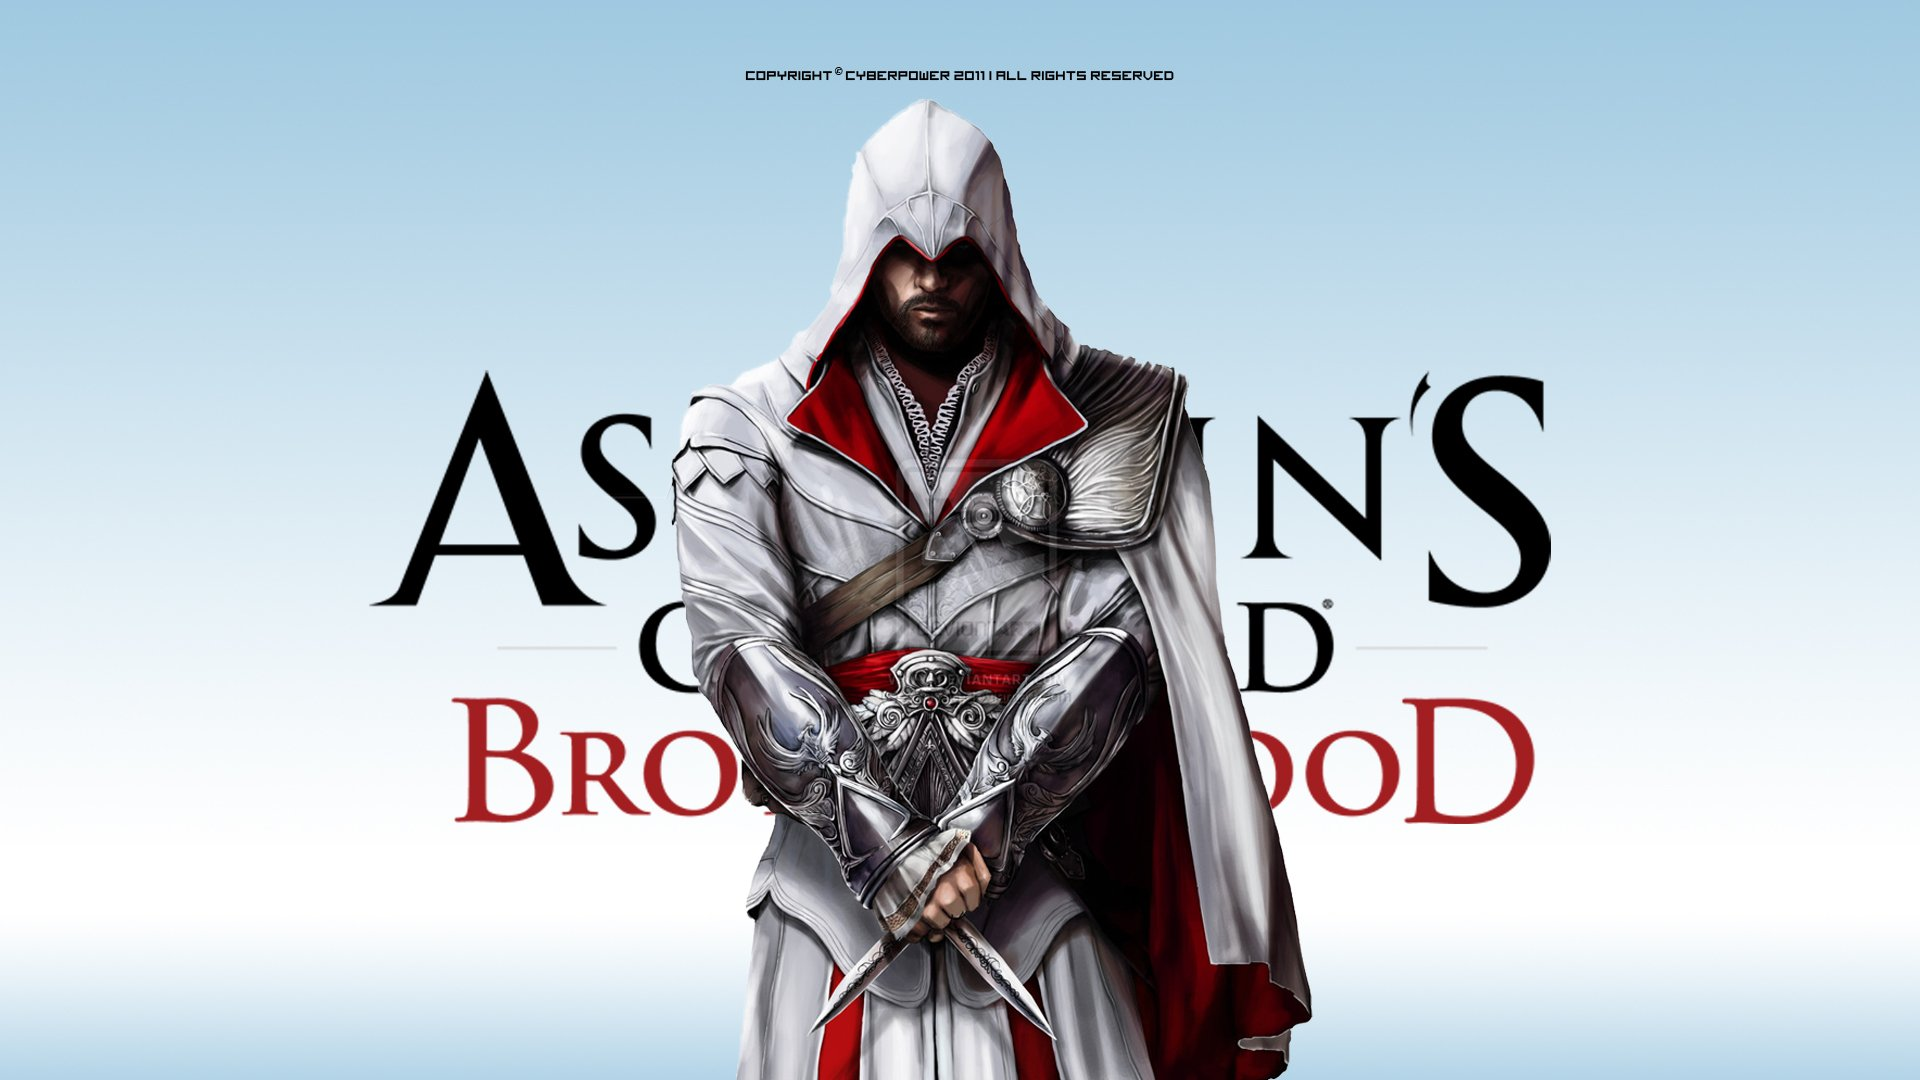 Video Game - Assassin's Creed: Brotherhood  Ezio (Assassin's Creed) Wallpaper